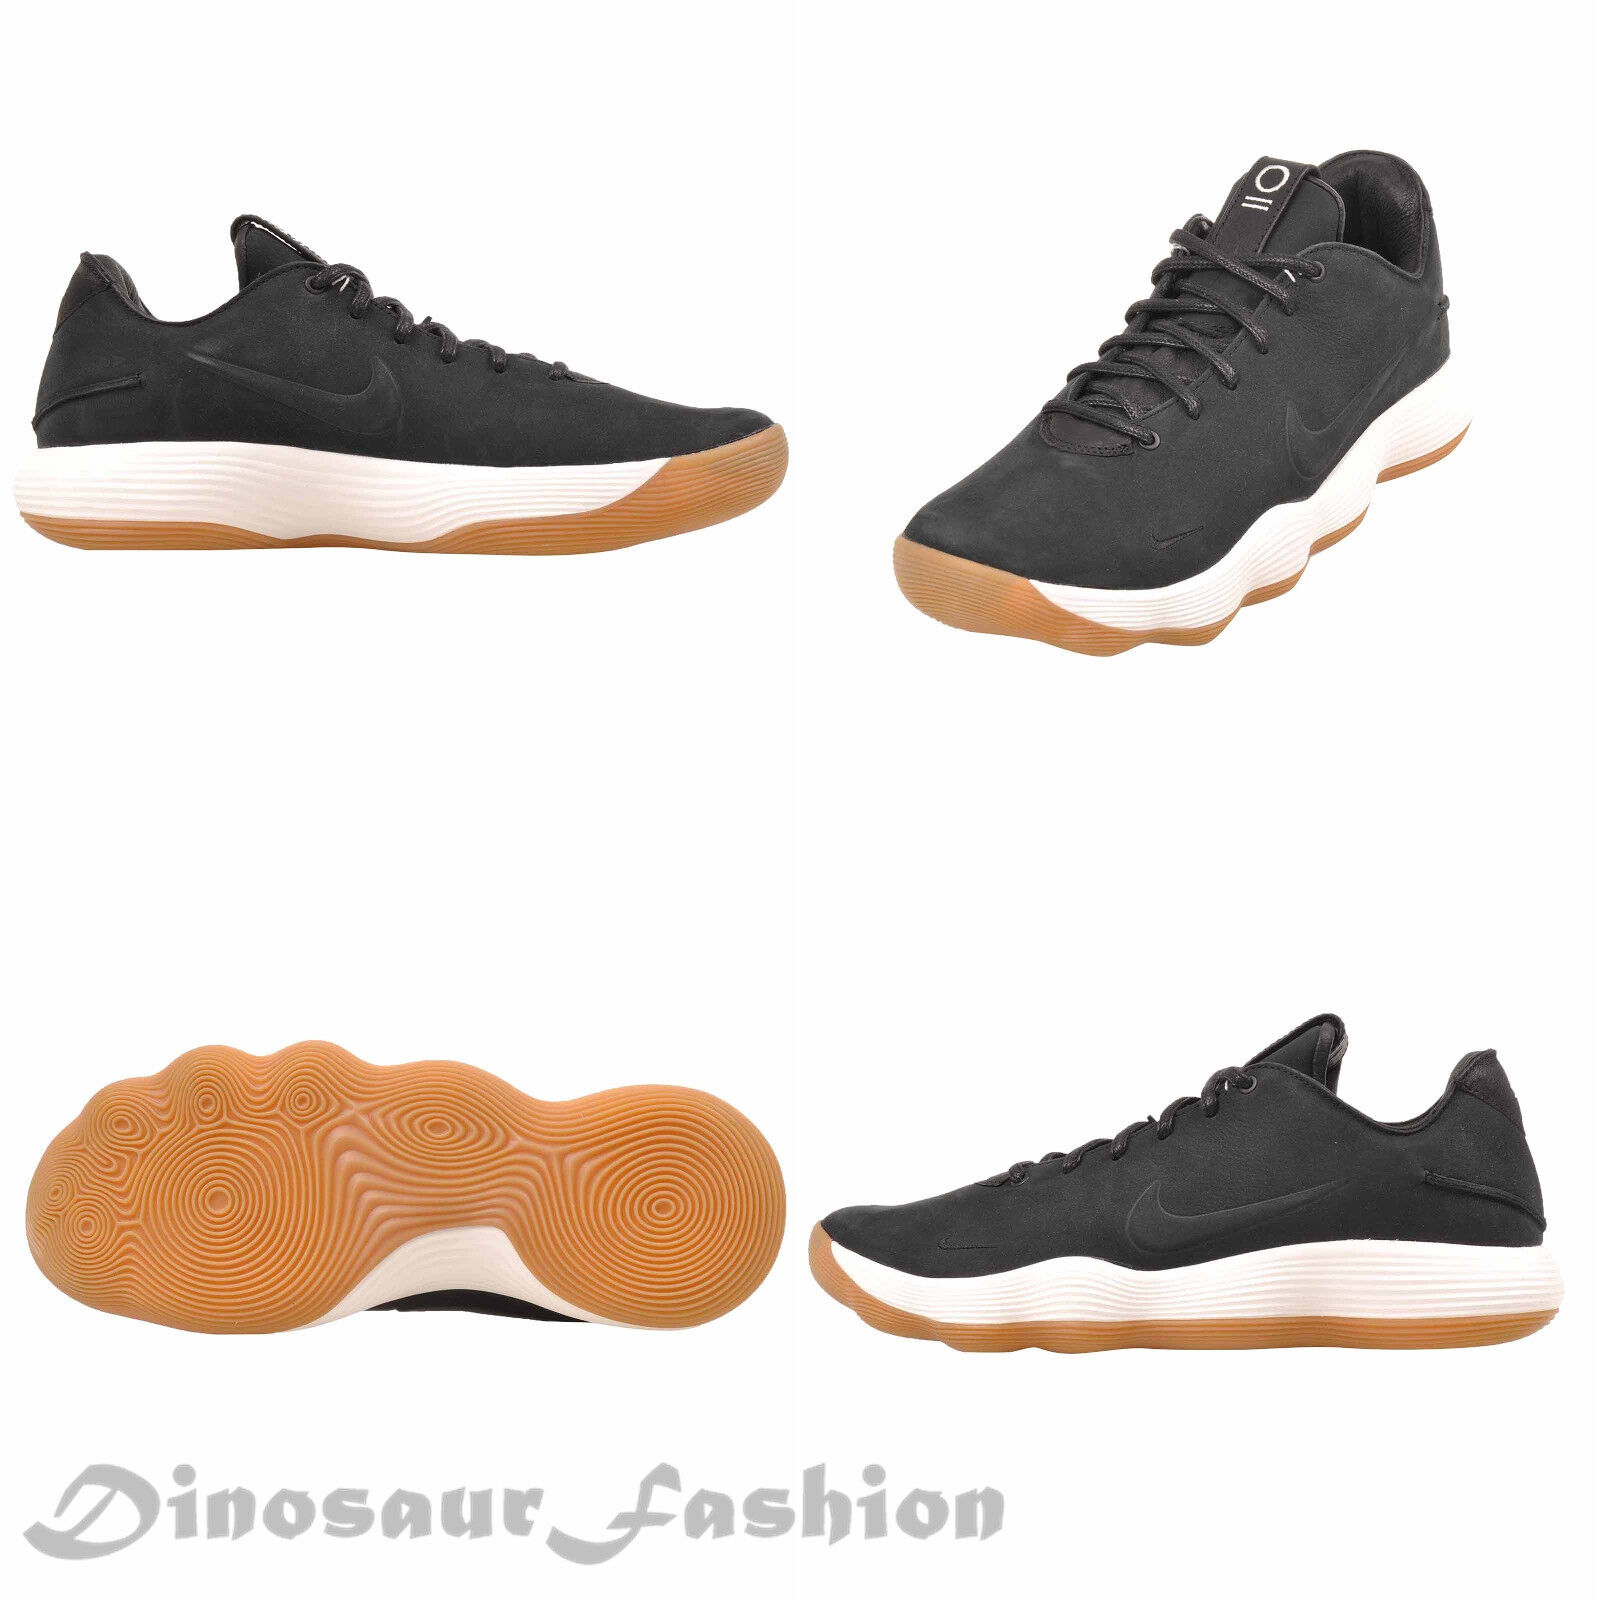 finest selection 5e797 dfa68 NIKE HYPERDUNK 2018 LOW LMTD , Hommes Basketball Athletic Chaussures .NWBOX